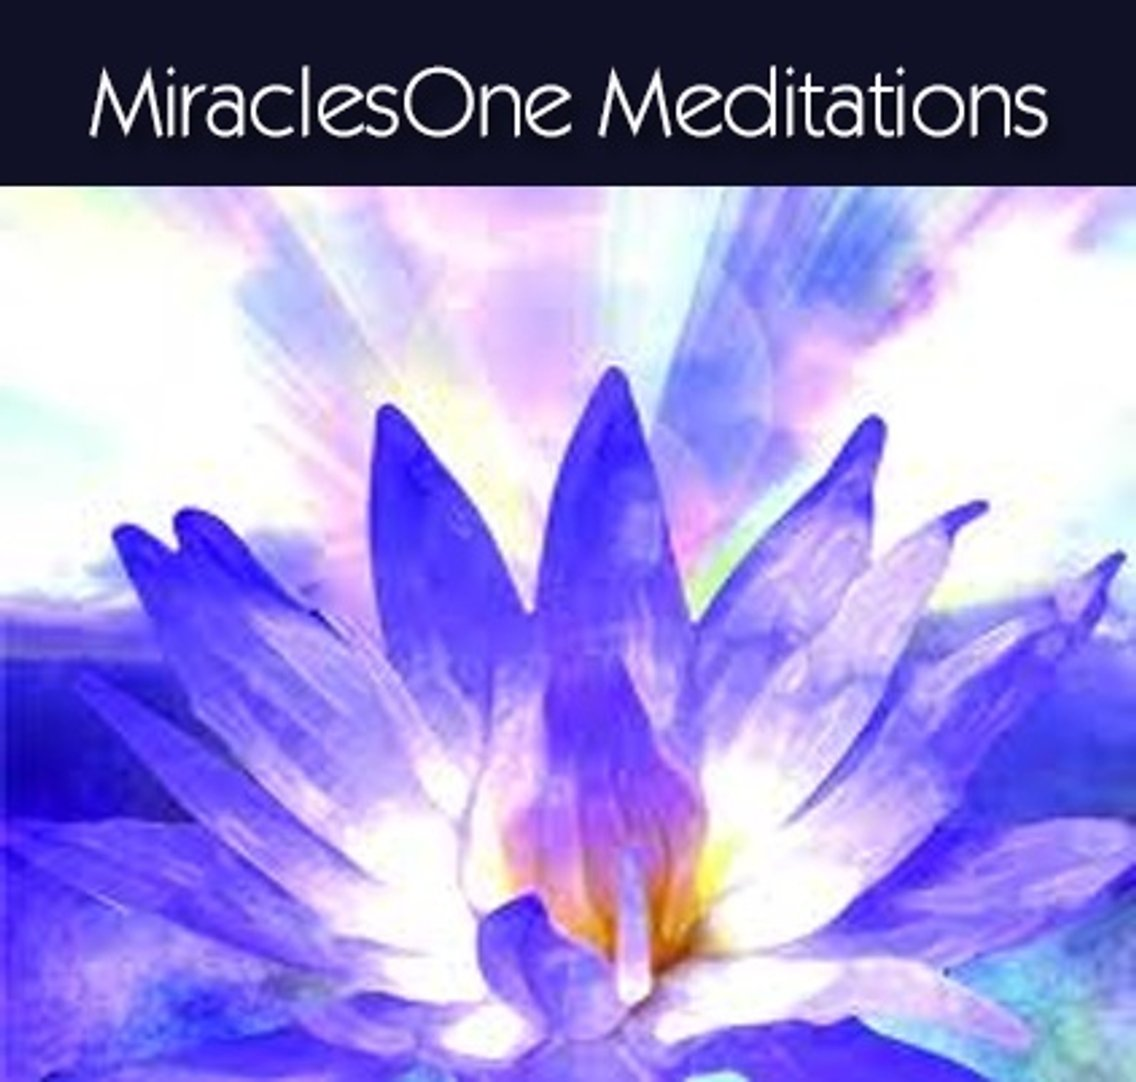 MiraclesOne Meditations - Cover Image